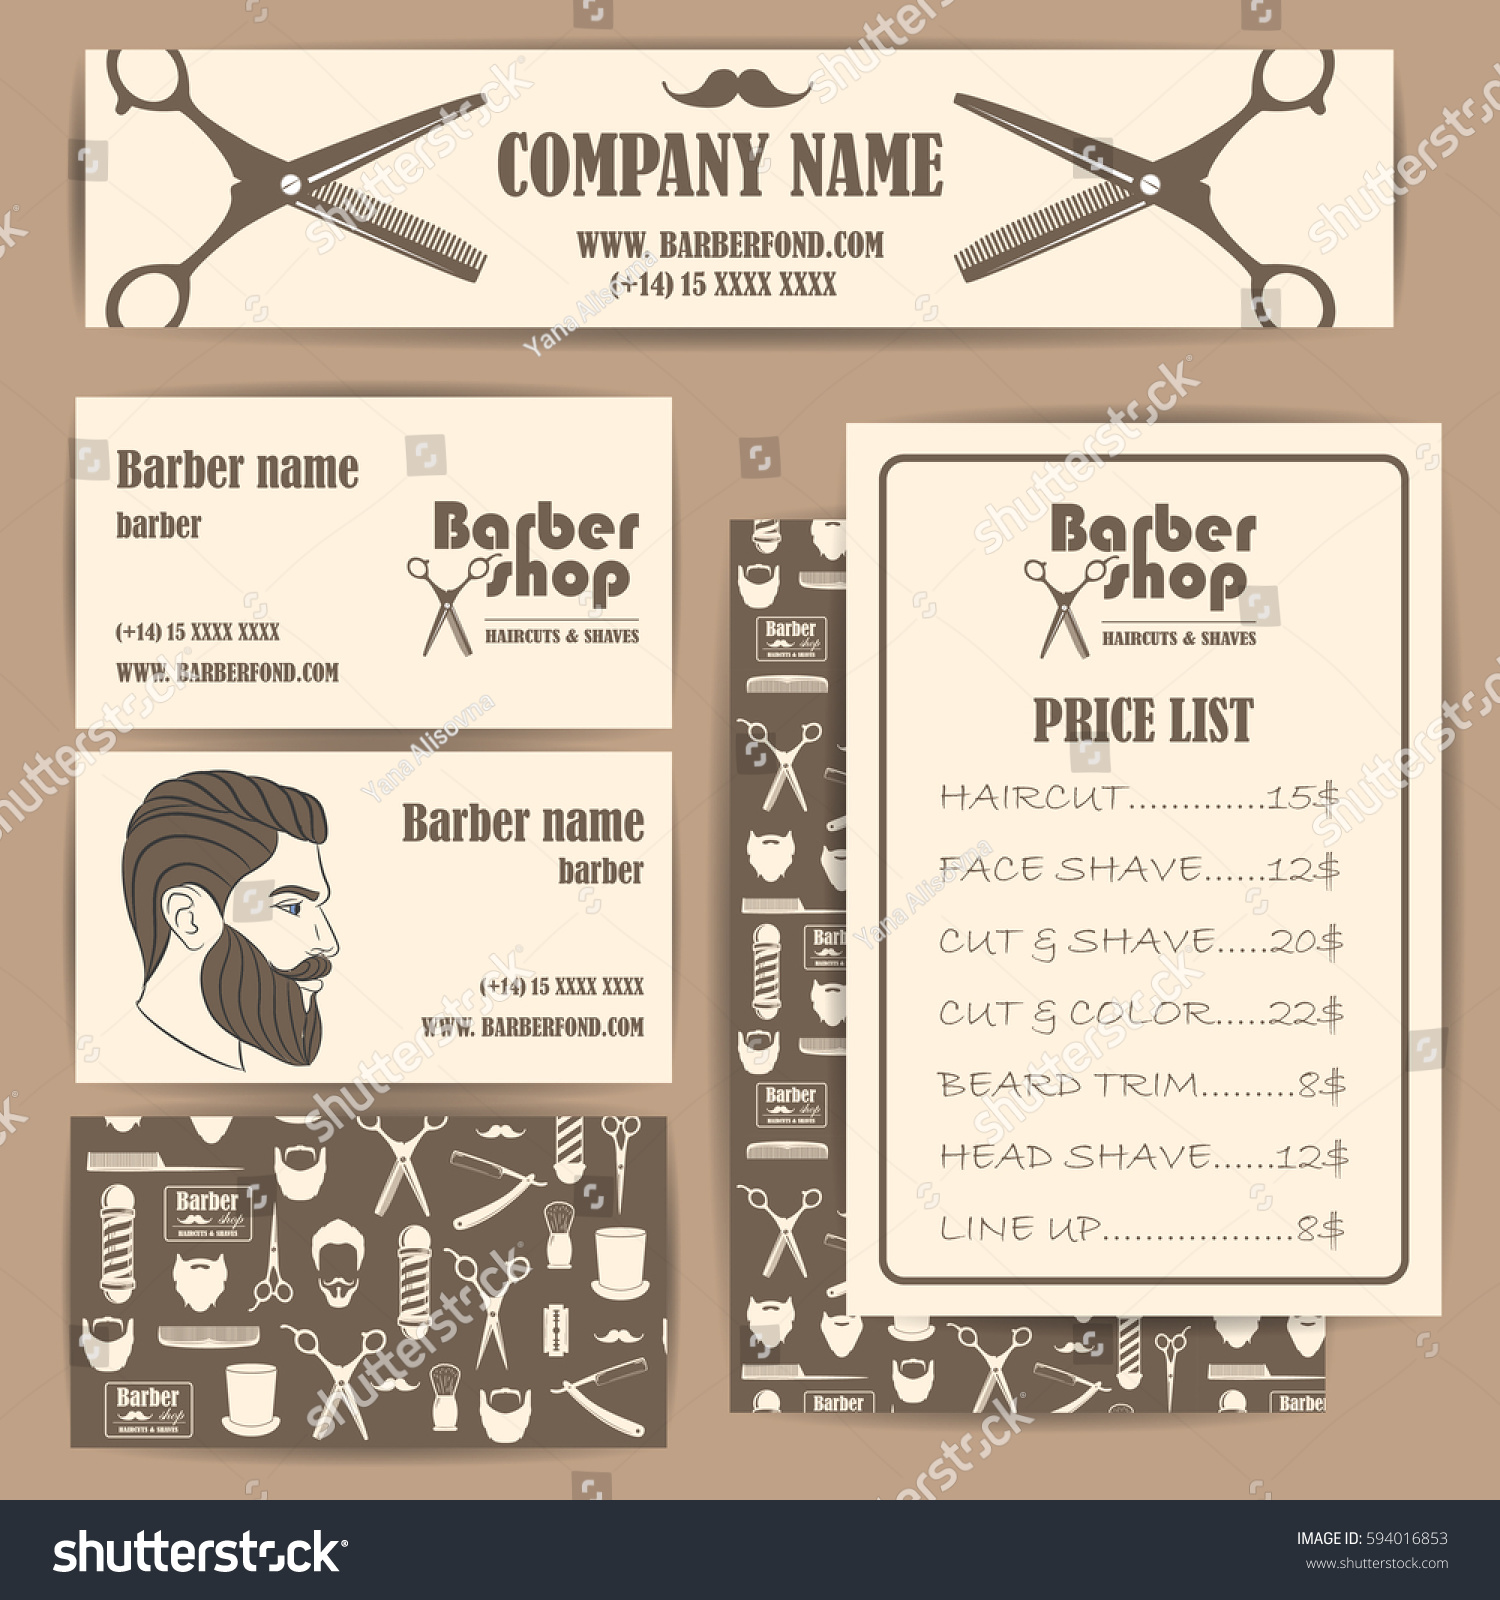 Comfortable Barber Shop Business Card Templates Ideas - Business ...